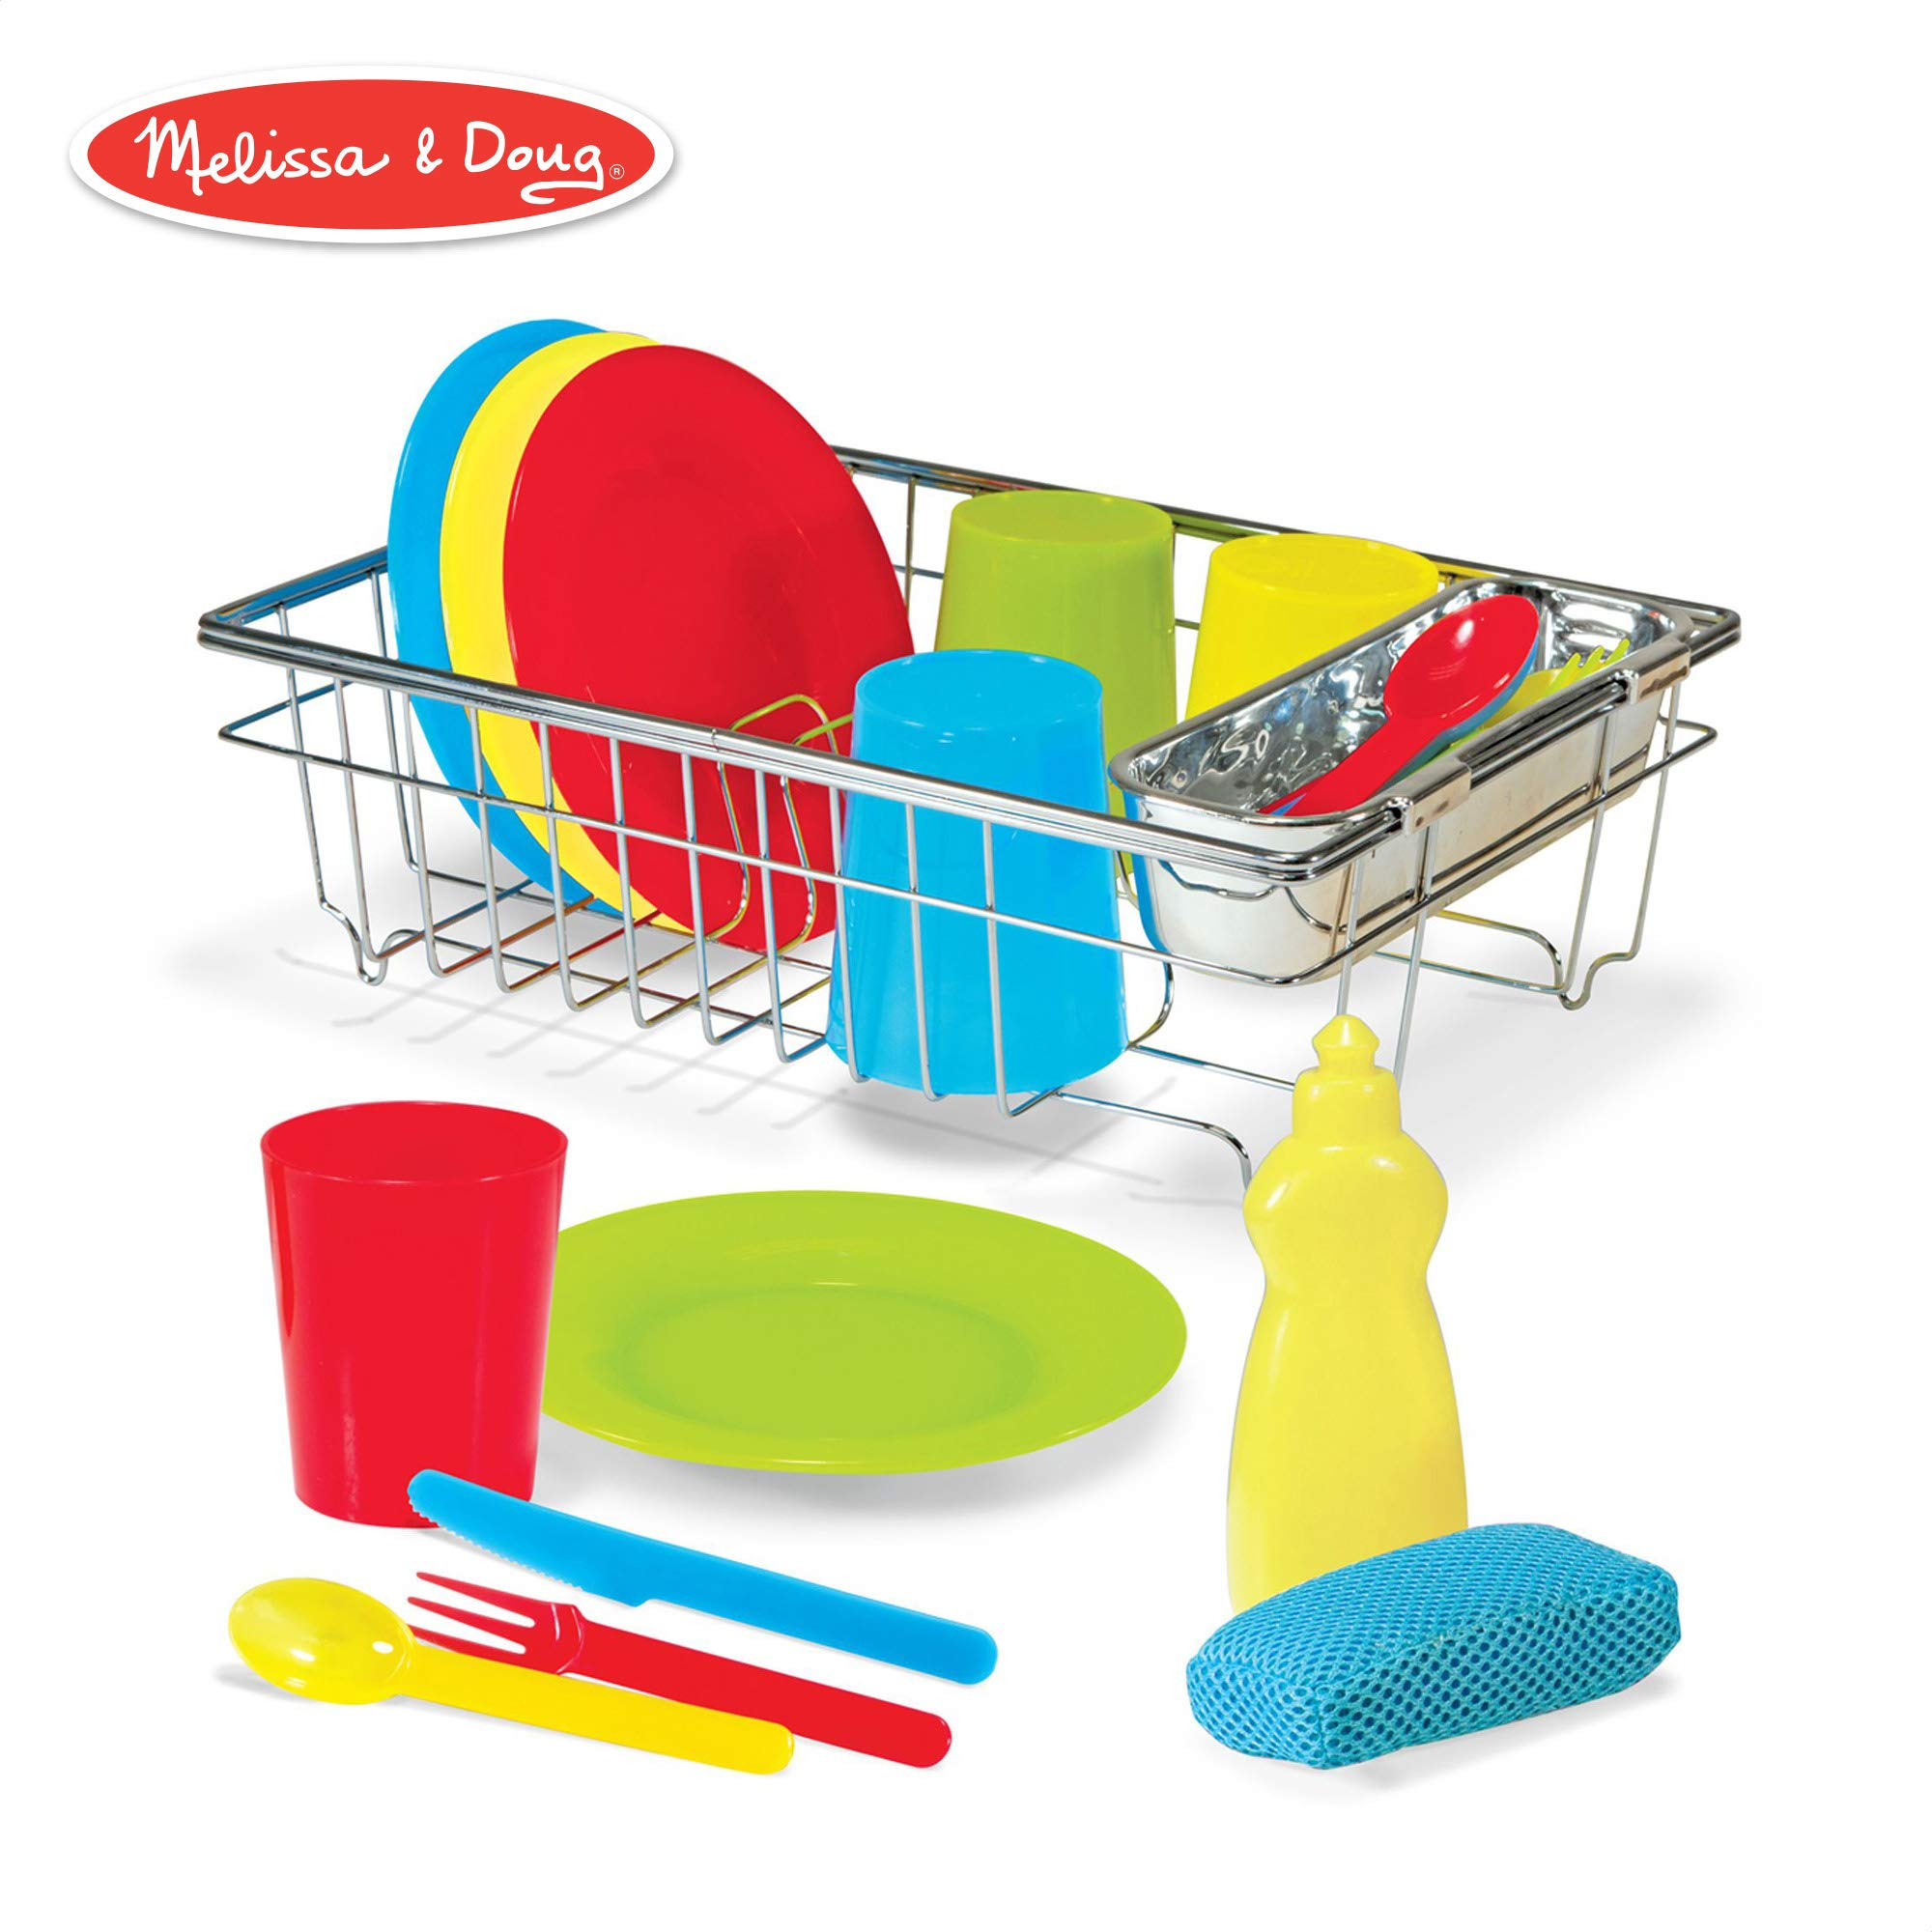 Melissa & Doug Let's Play House! Wash & Dry Dish Set, 4 Place Settings, Use with Kitchen Set or Stand-Alone, 24 Pieces, 4'' H x 11.5'' W x 8.5'' L